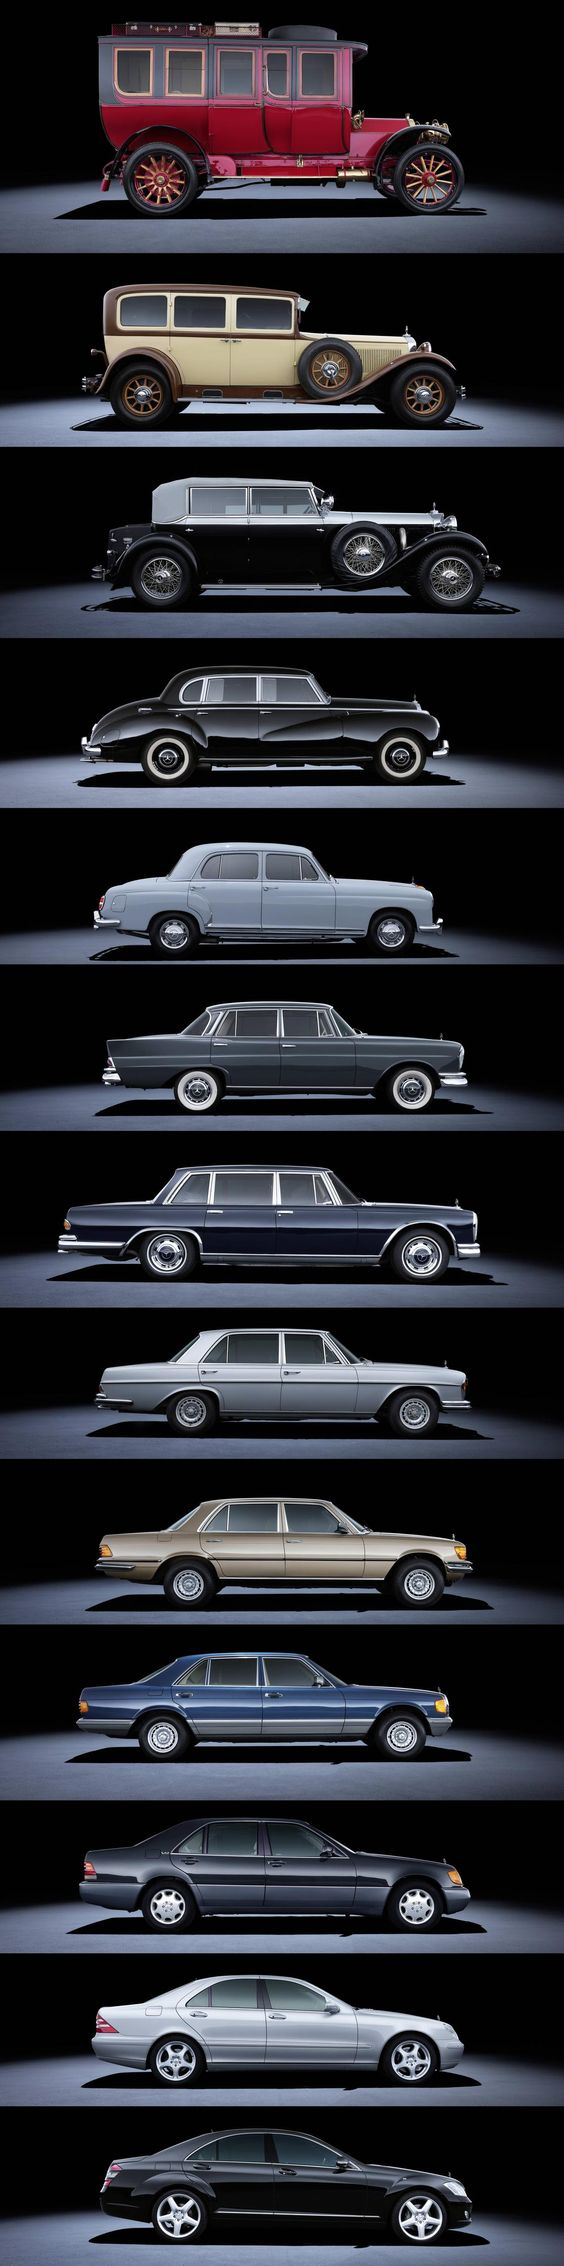 How many amg 6 0 4v w126 sec and sel cars were built amg side shot - 388 Best Sl W107 Sec W126 600 Grosser Images On Pinterest Mercedes 600 Classic Mercedes And Limo